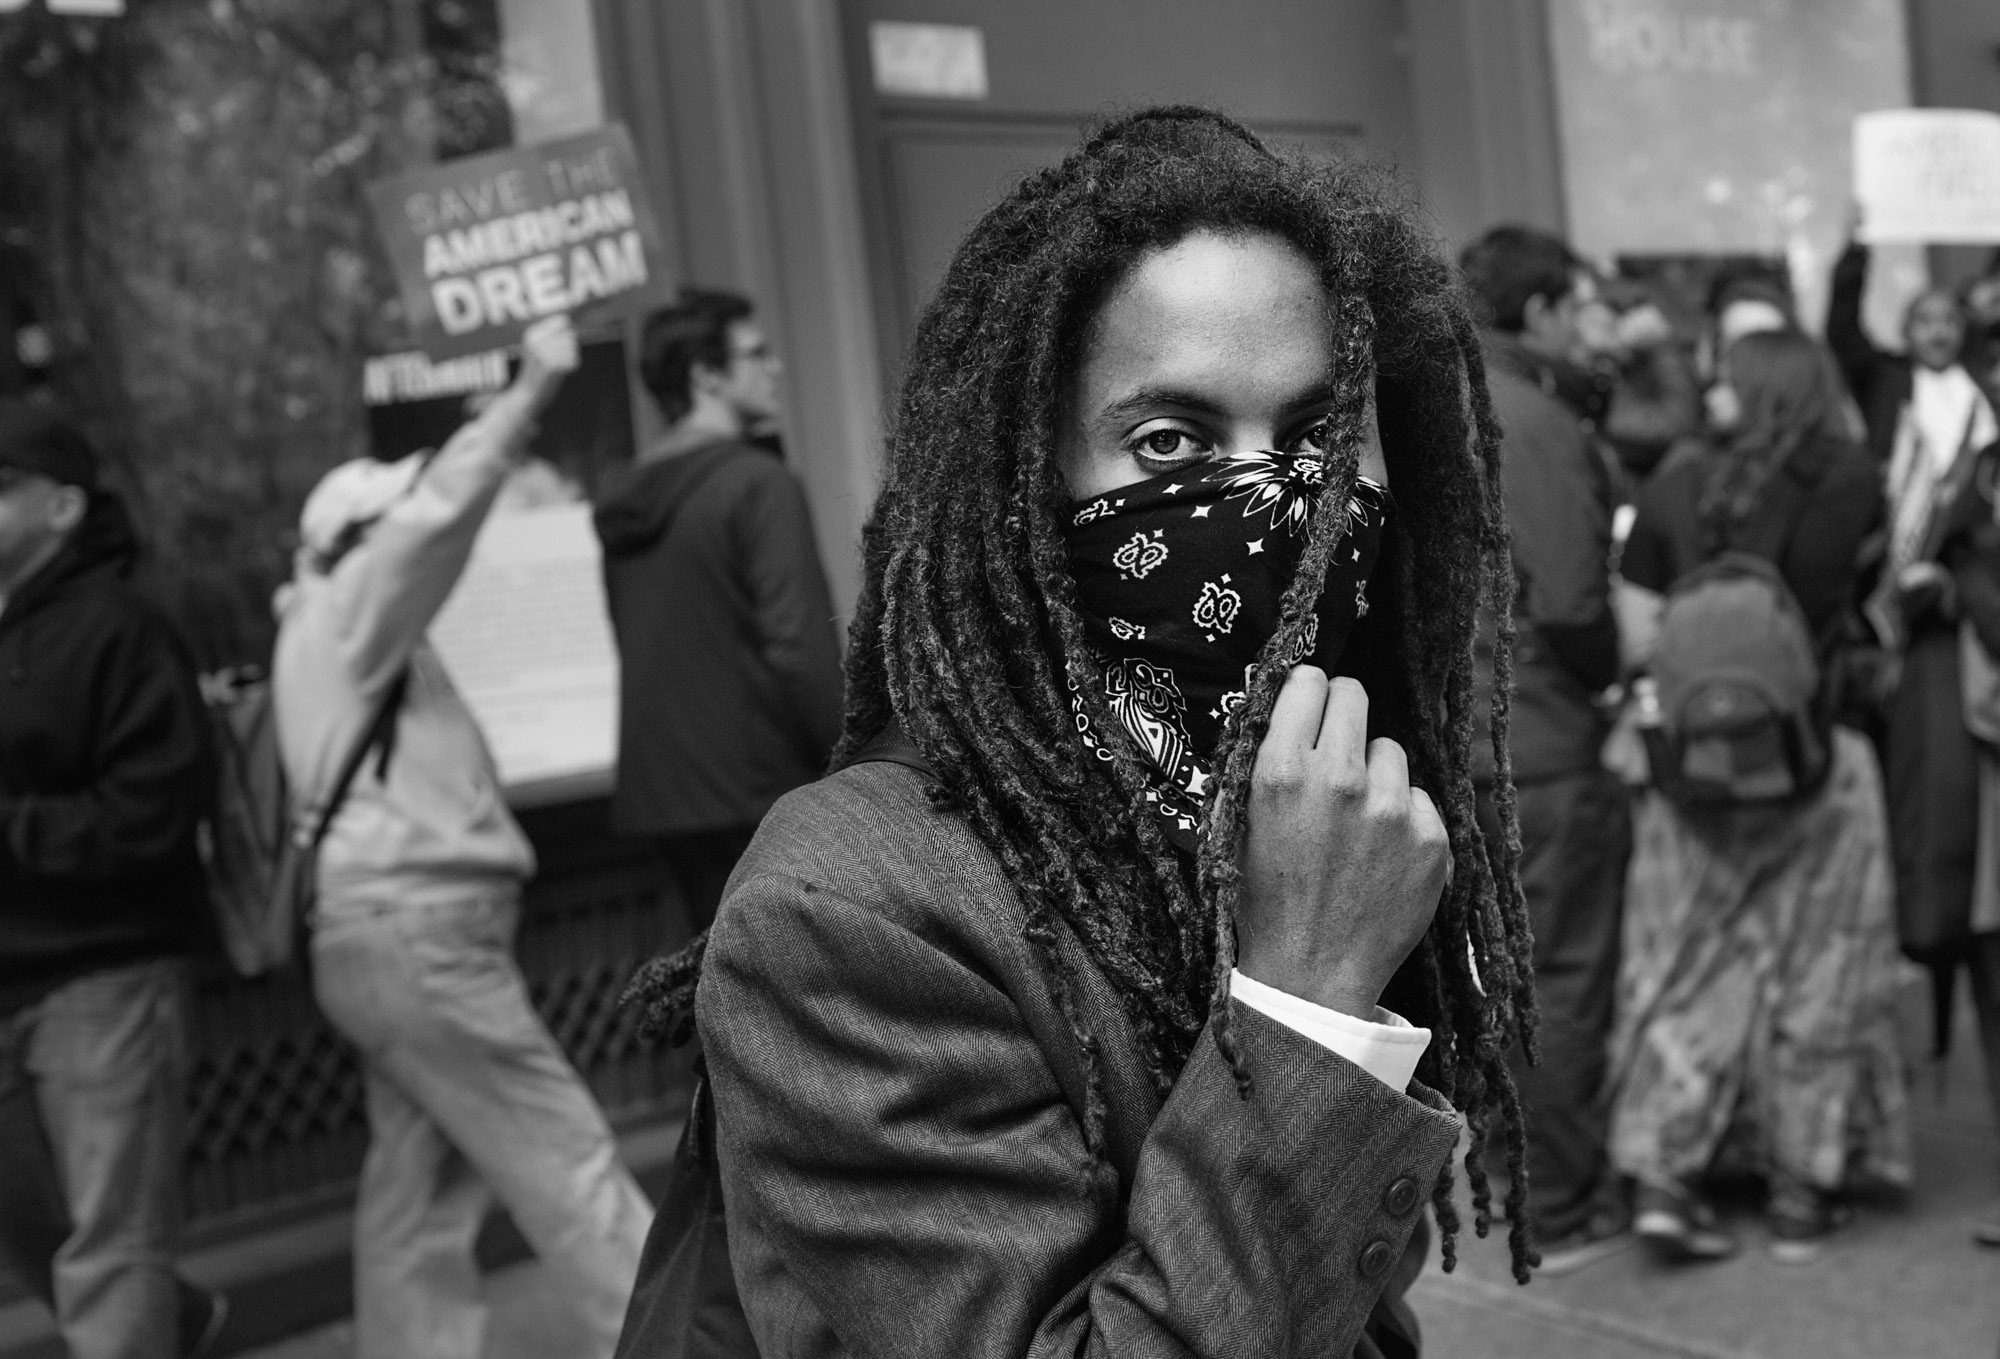 An OWS protestor stops to look into the camera during a march to Union Square.